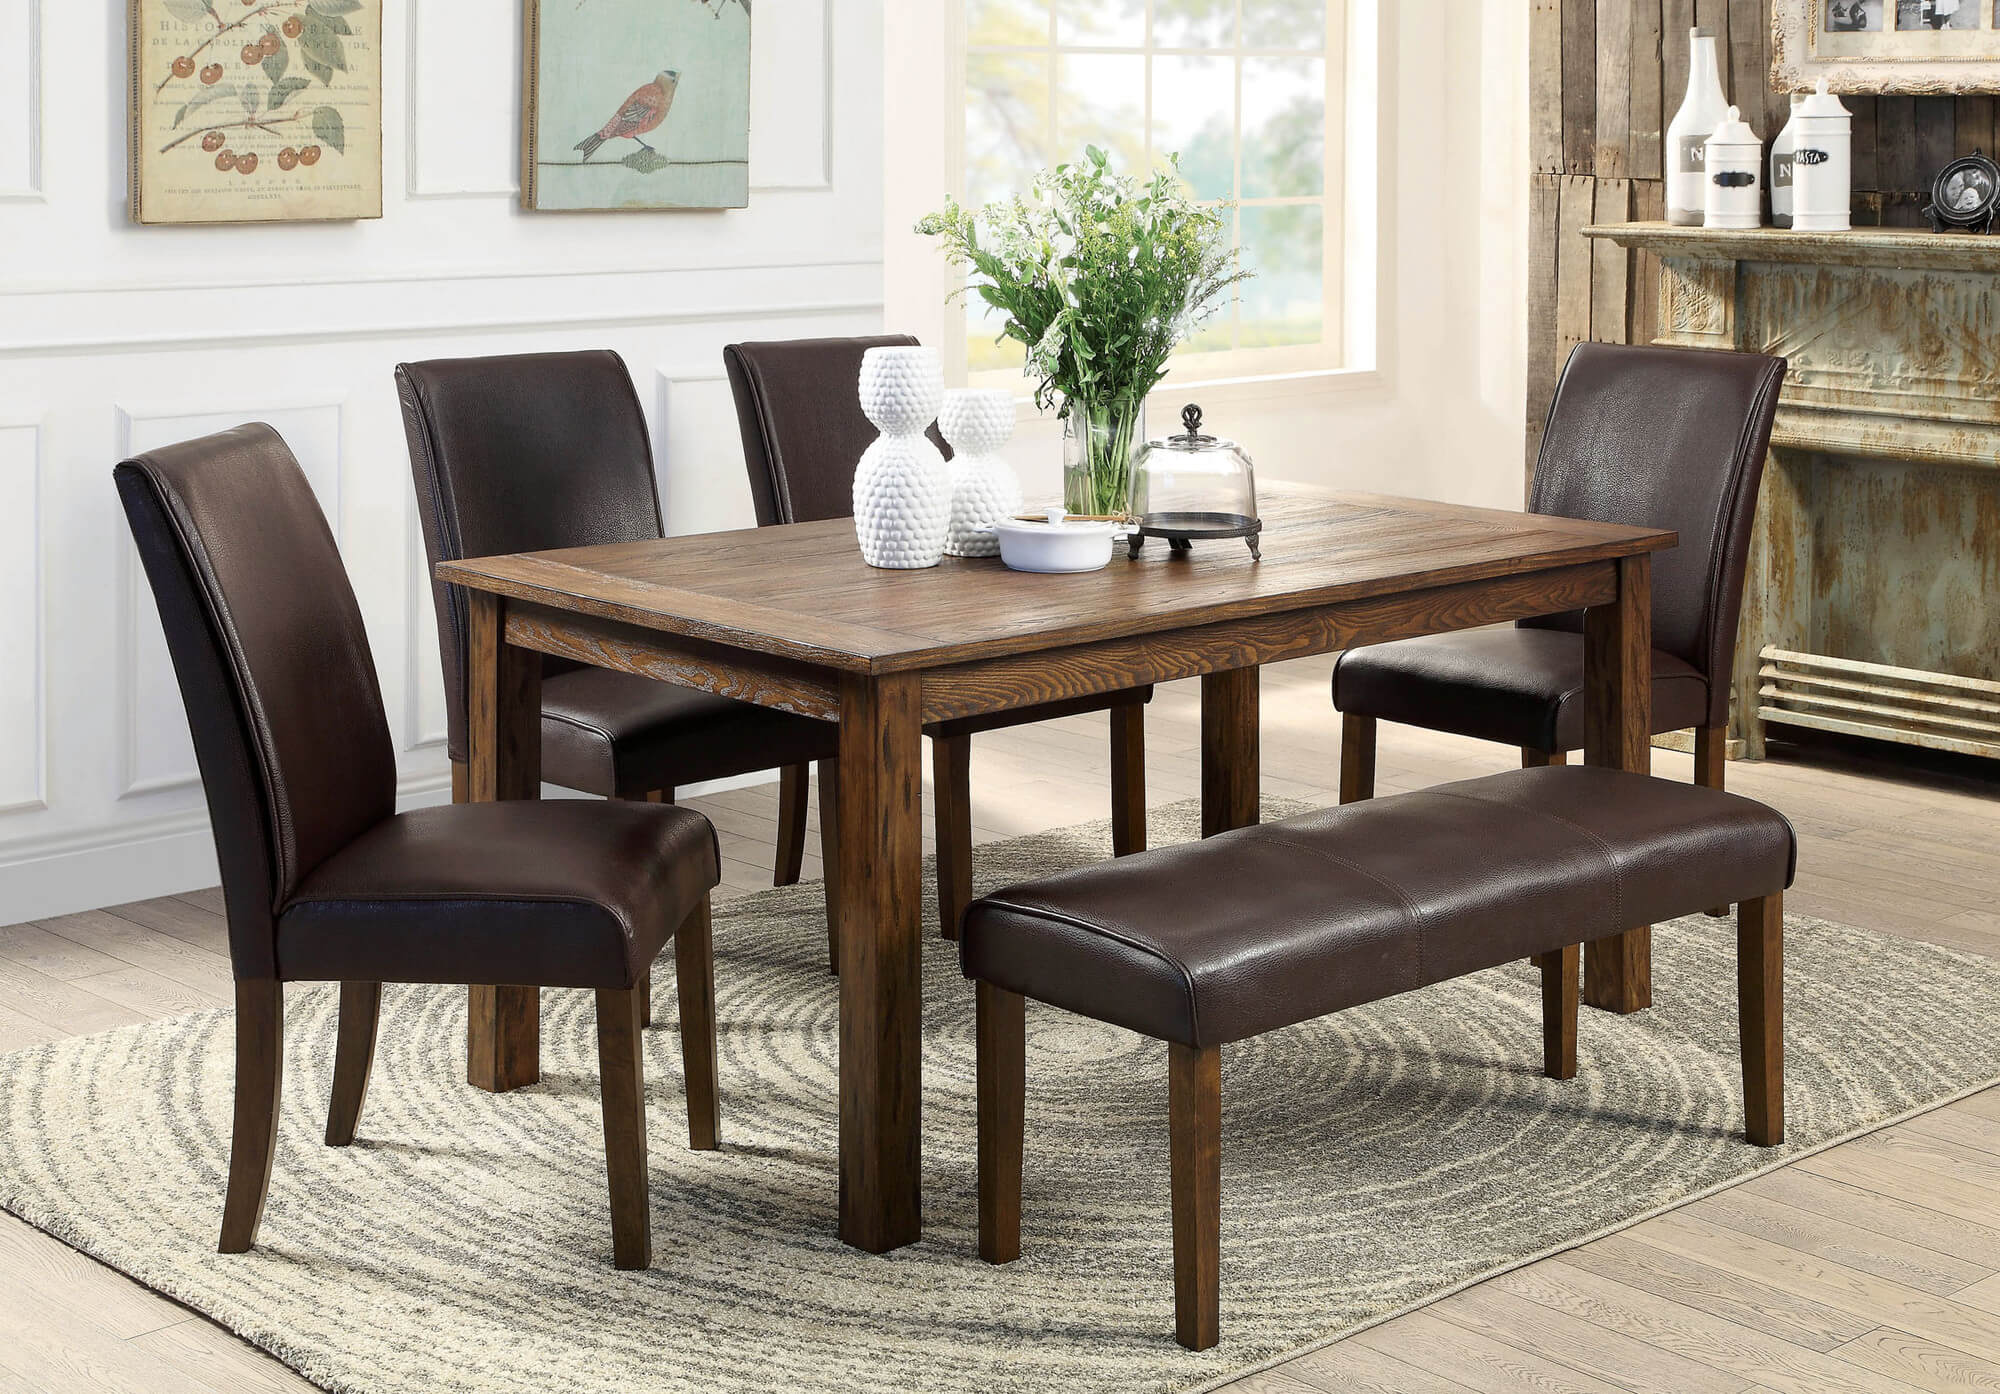 rustic rectangle dining table with fully cushioned chairs and bench